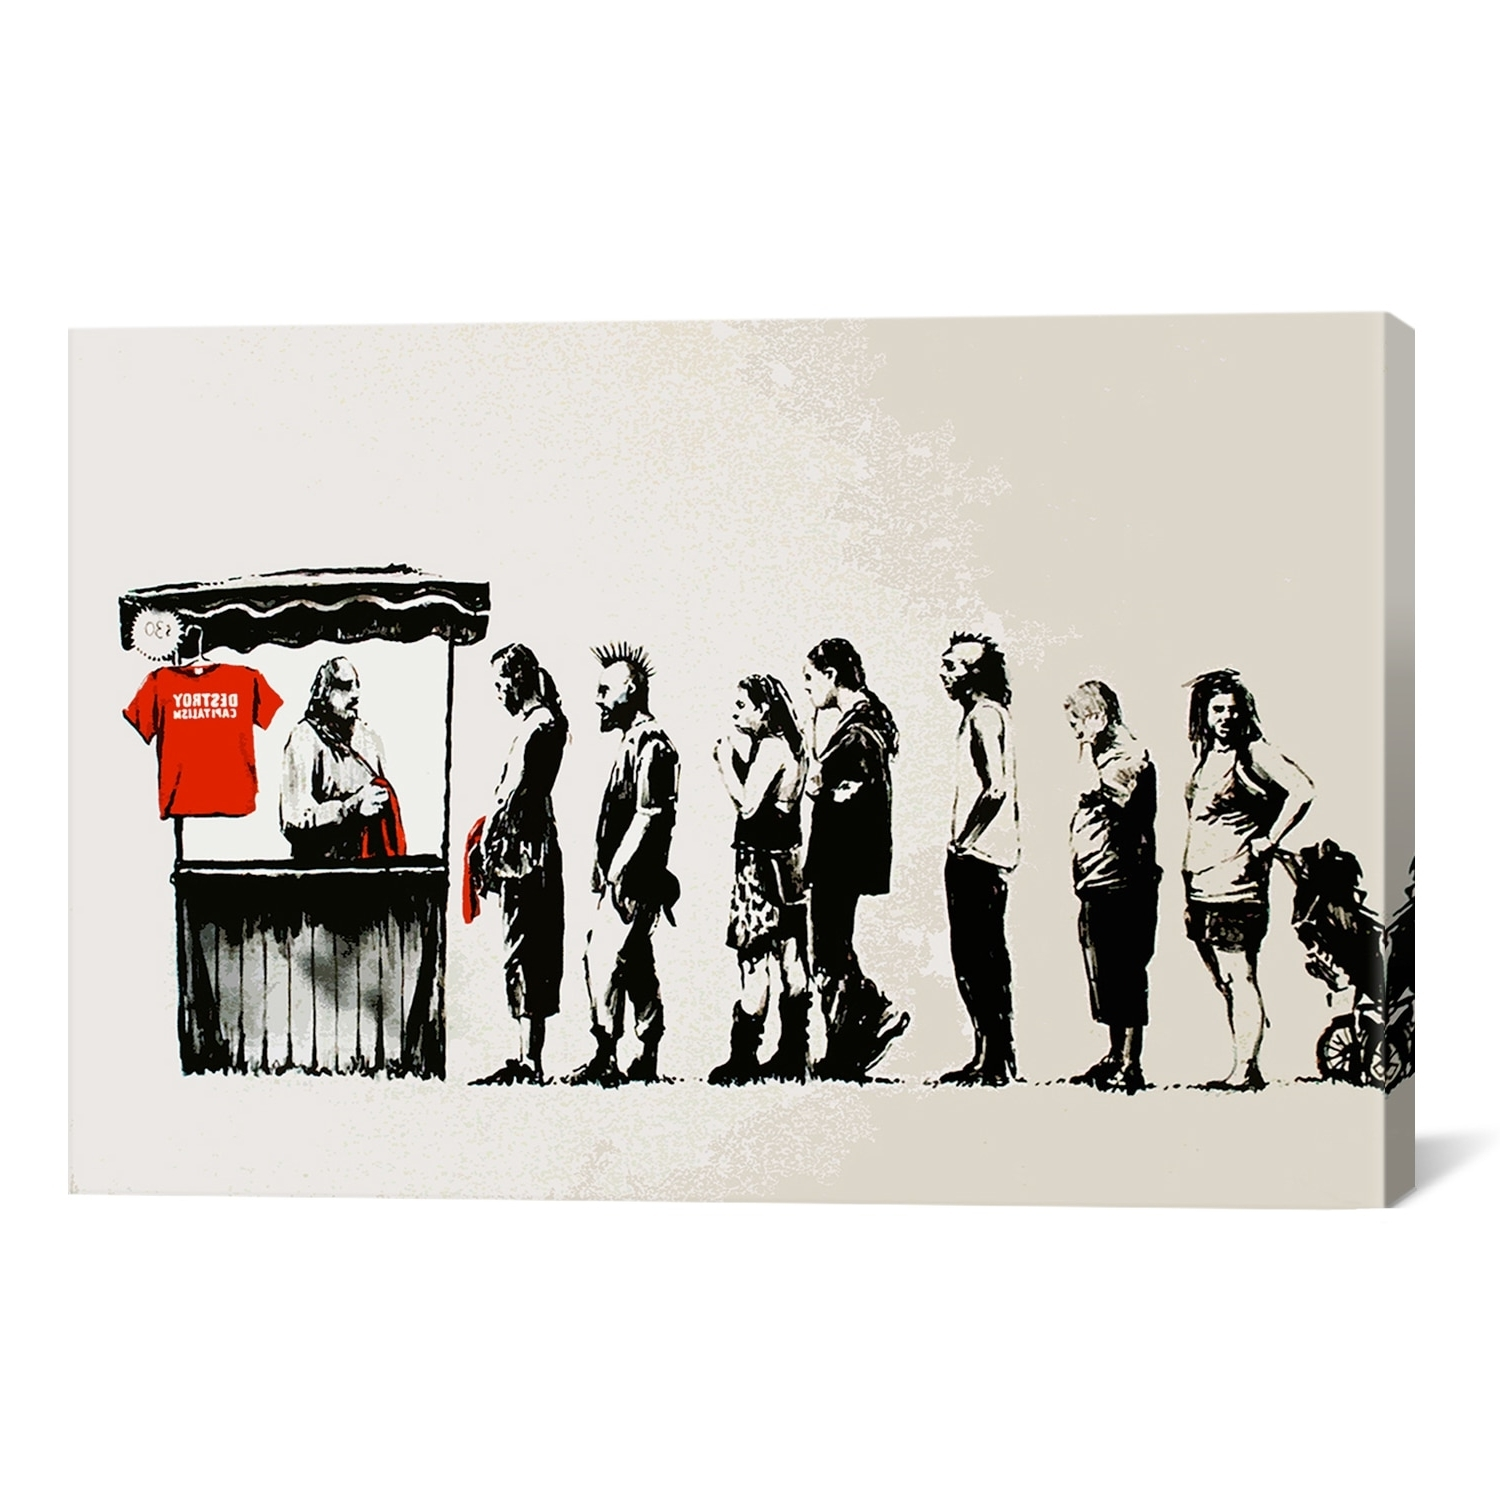 Most Current Icanvas Banksy Destroy Capitalism Canvas Print Wall Art – Walmart Intended For Banksy Wall Art Canvas (View 12 of 15)